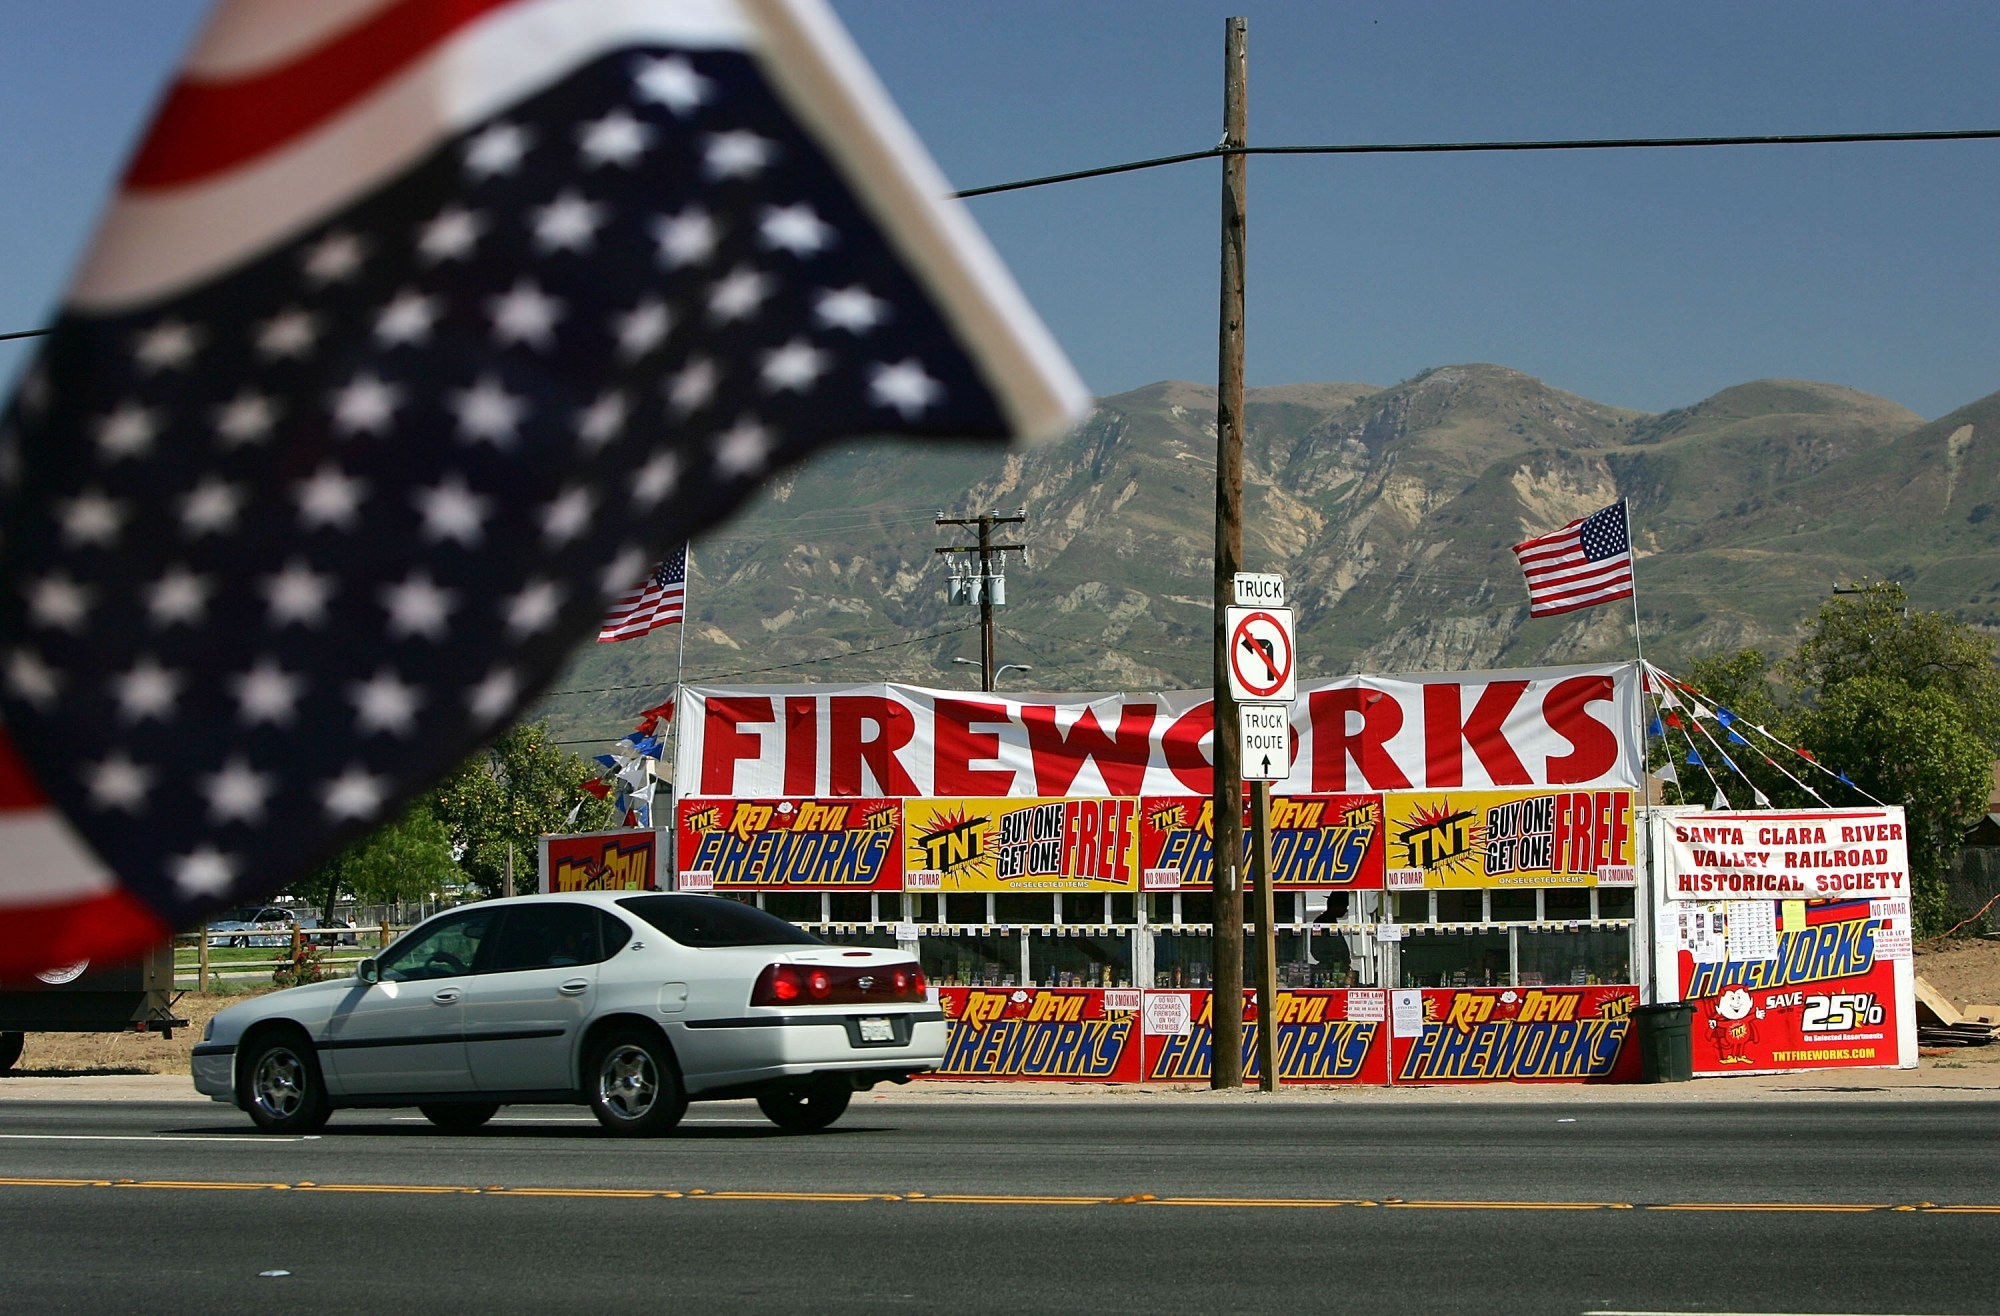 A fireworks stand, one of about 25 booths that are open for business, advertises on the first day of fireworks sales for Fourth of July celebrations June 28, 2005 in Fillmore. (David McNew/Getty Images)